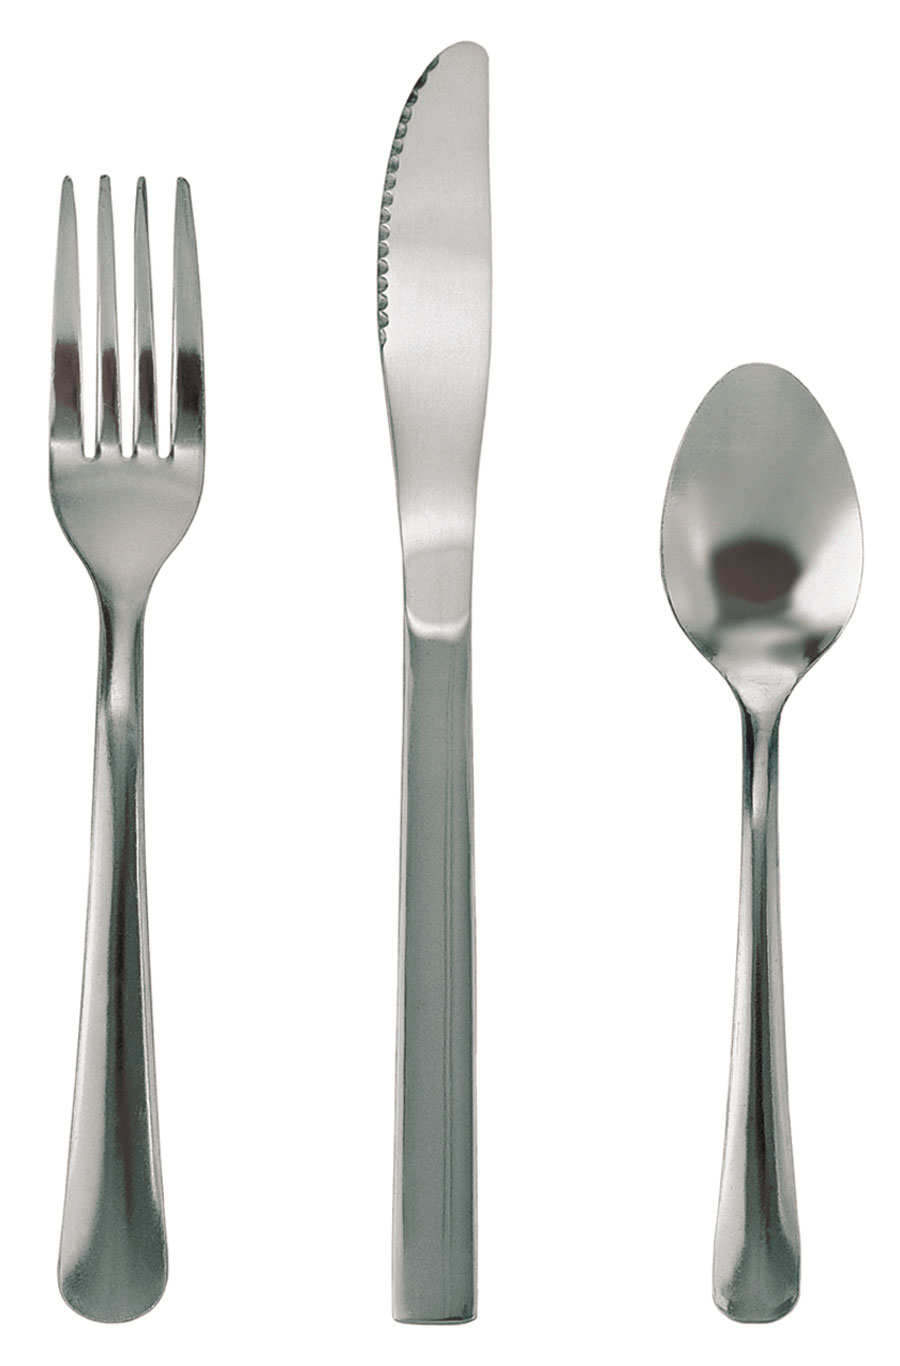 Update International WH/CP-59 Windsor Serving Spoon in Clear Pack - 1 doz